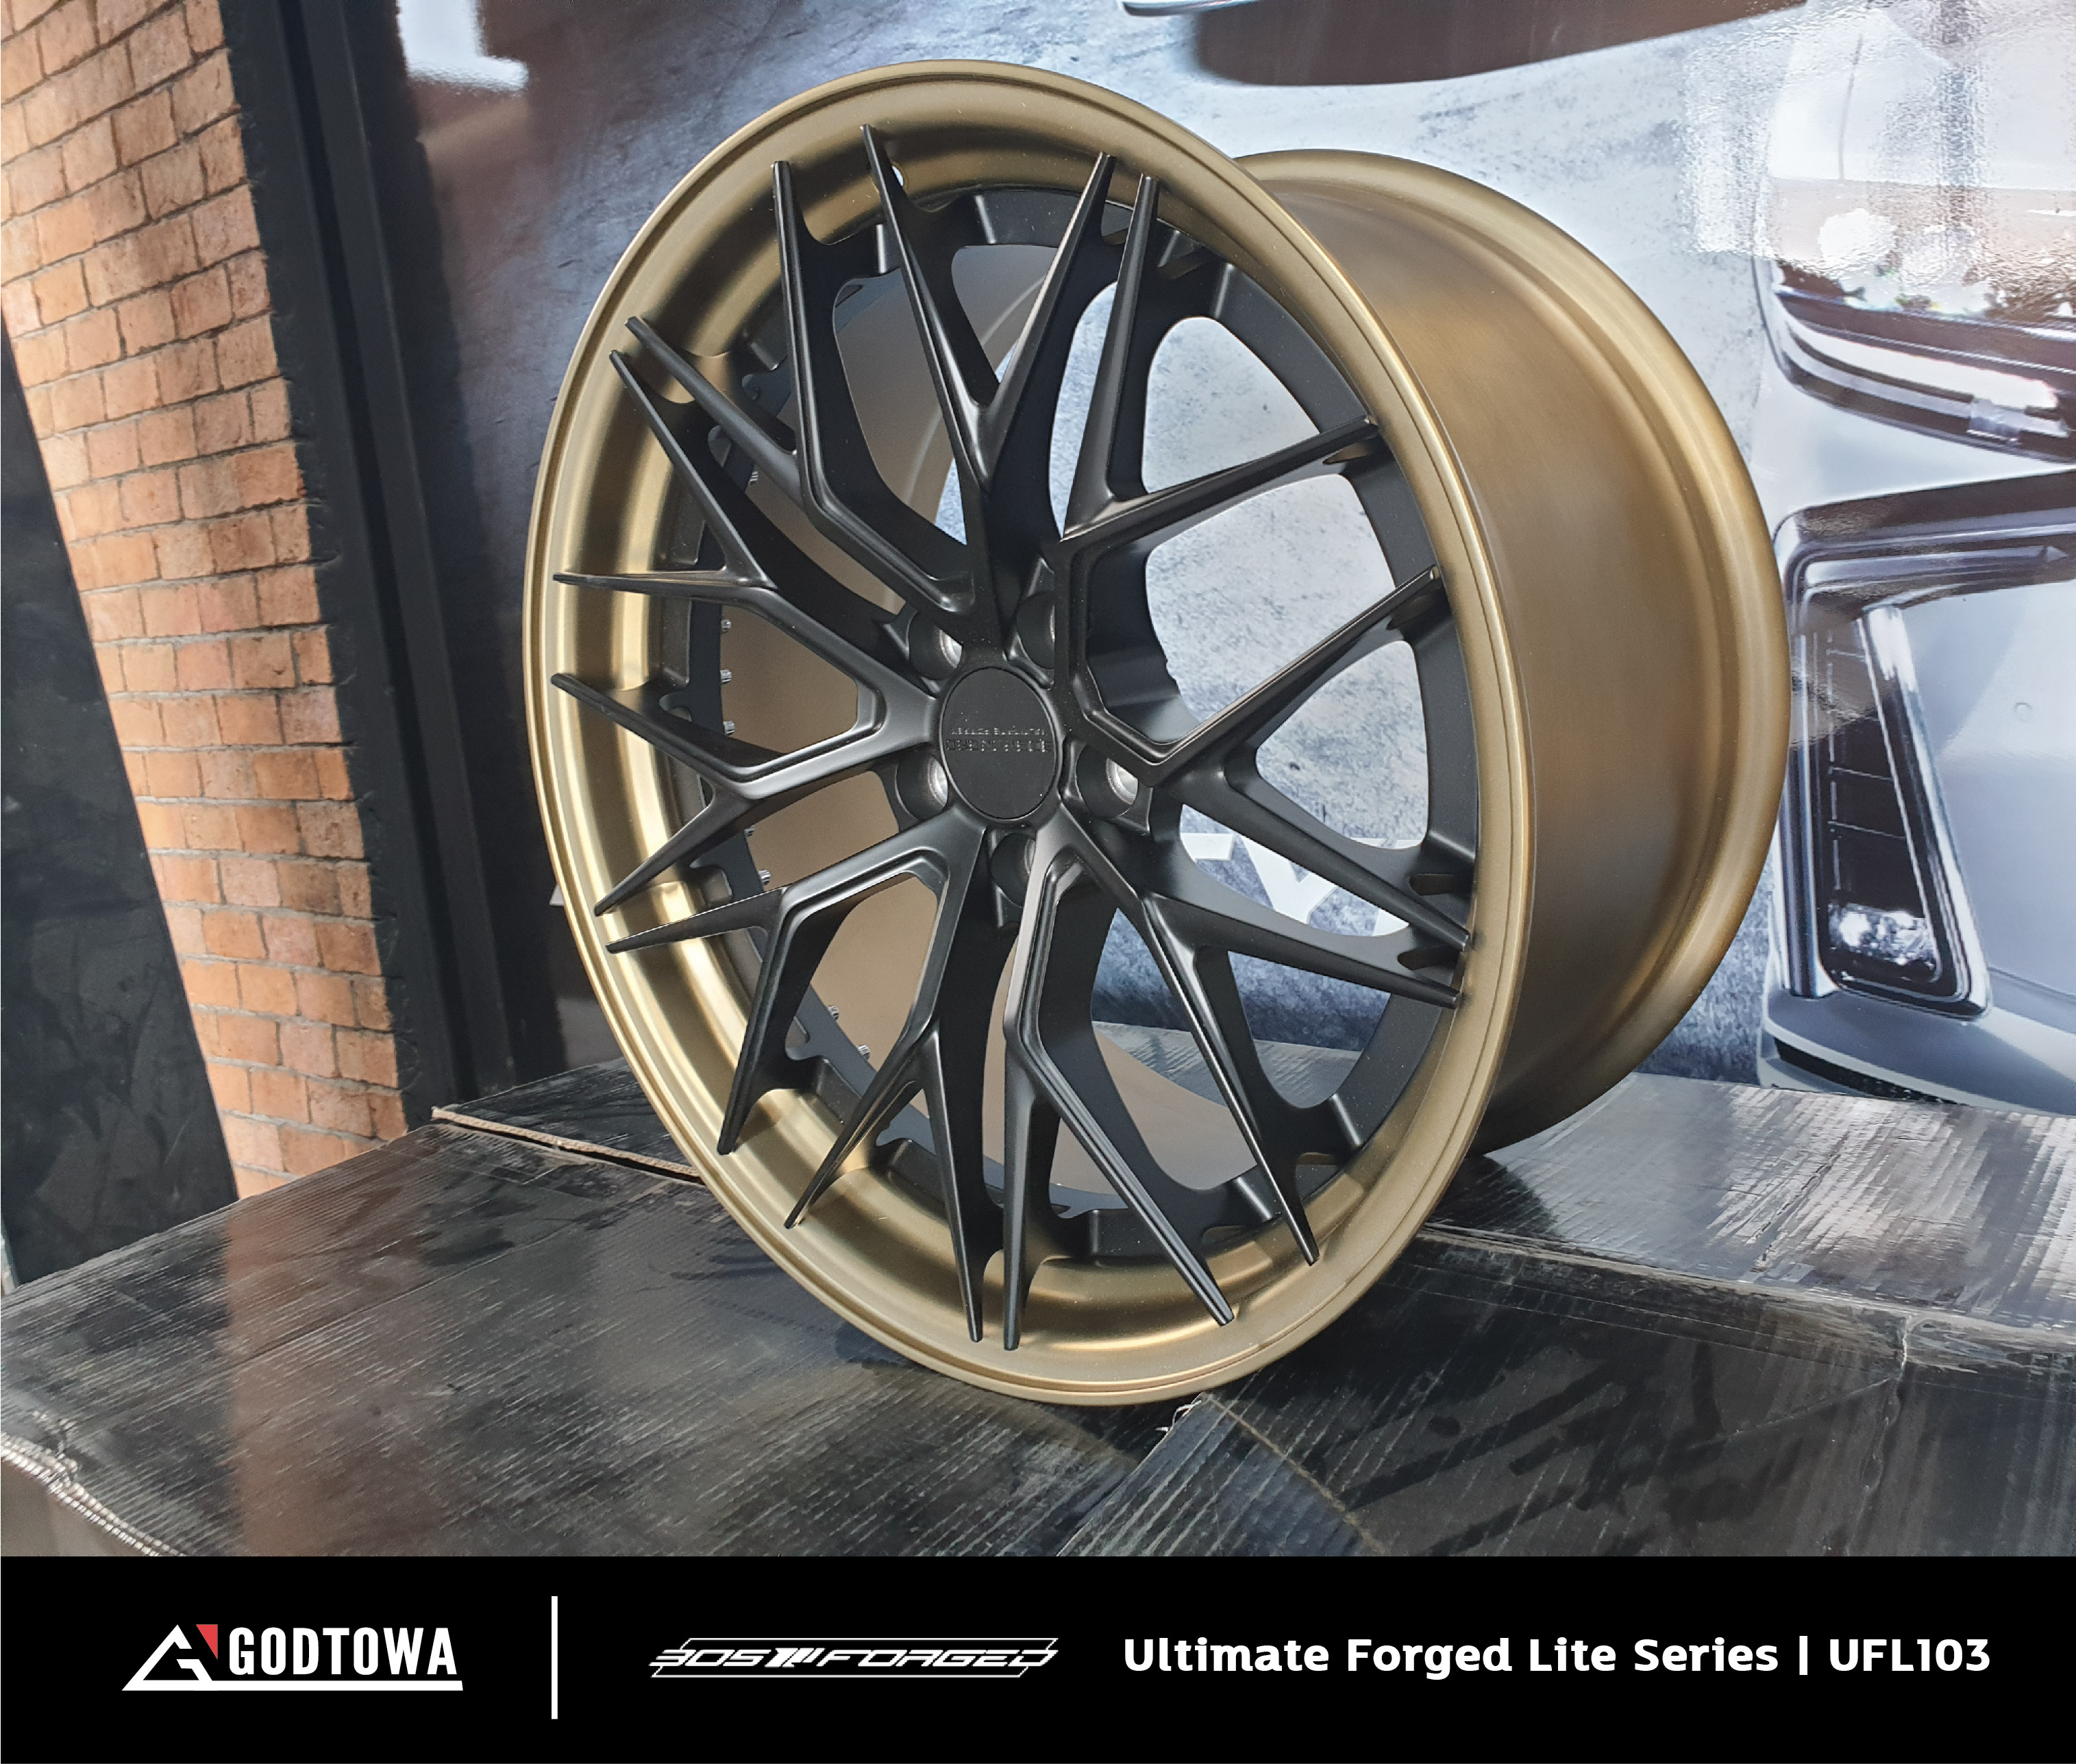 ล้อแม็กซ์ 305 Forged Ultimate Forged Lite Series | UFL103